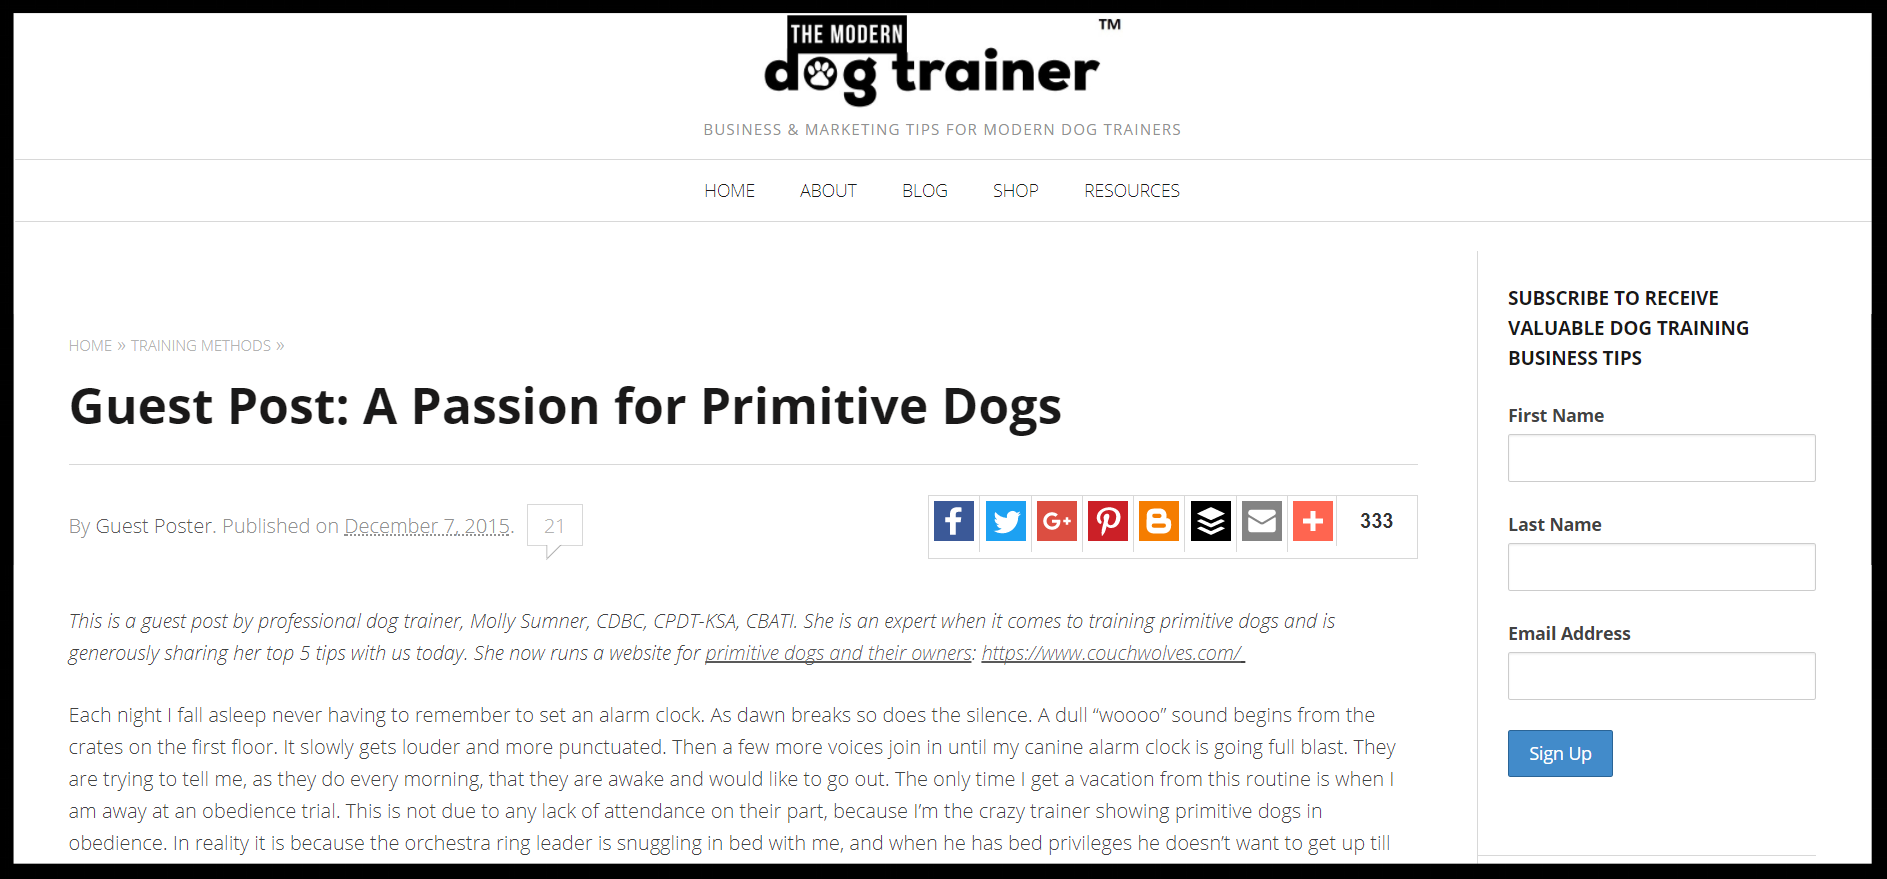 """It all started with a little blog post called """"A Passion for Primitive Dogs""""... -  Source: The Modern Dog Trainer"""